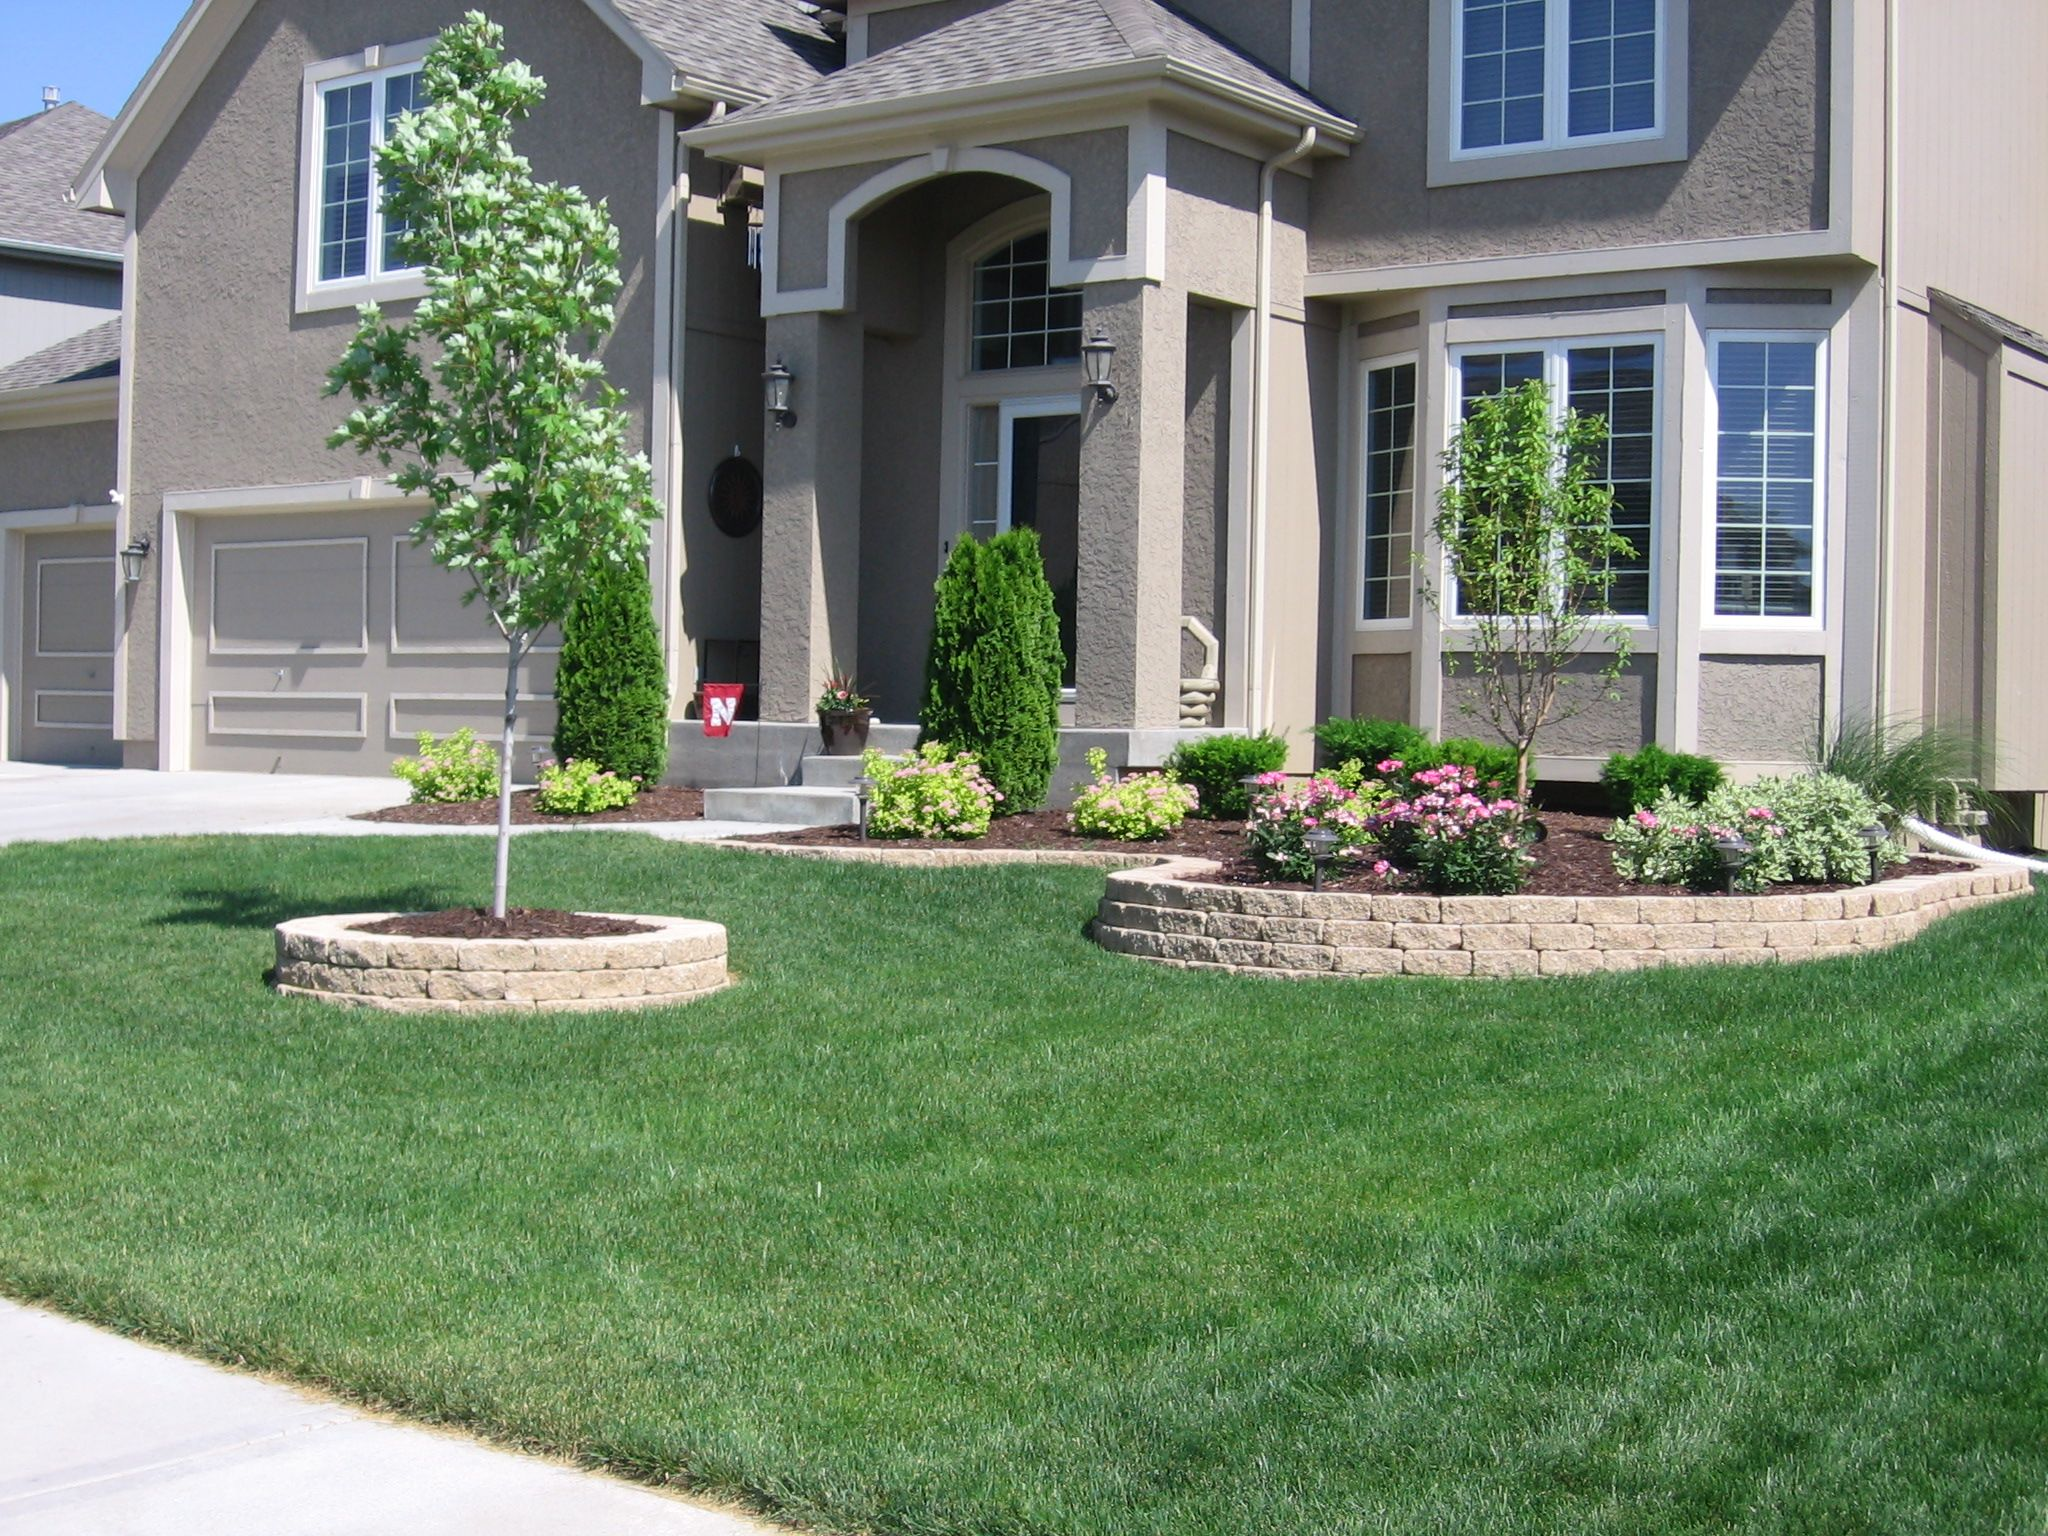 Attractive Landscaping Ideas For Front Yard   In Your Home, The Front Yard Landscape  Is The Part Home You Need To Design With The Best And Helpful Ideas. Part 20